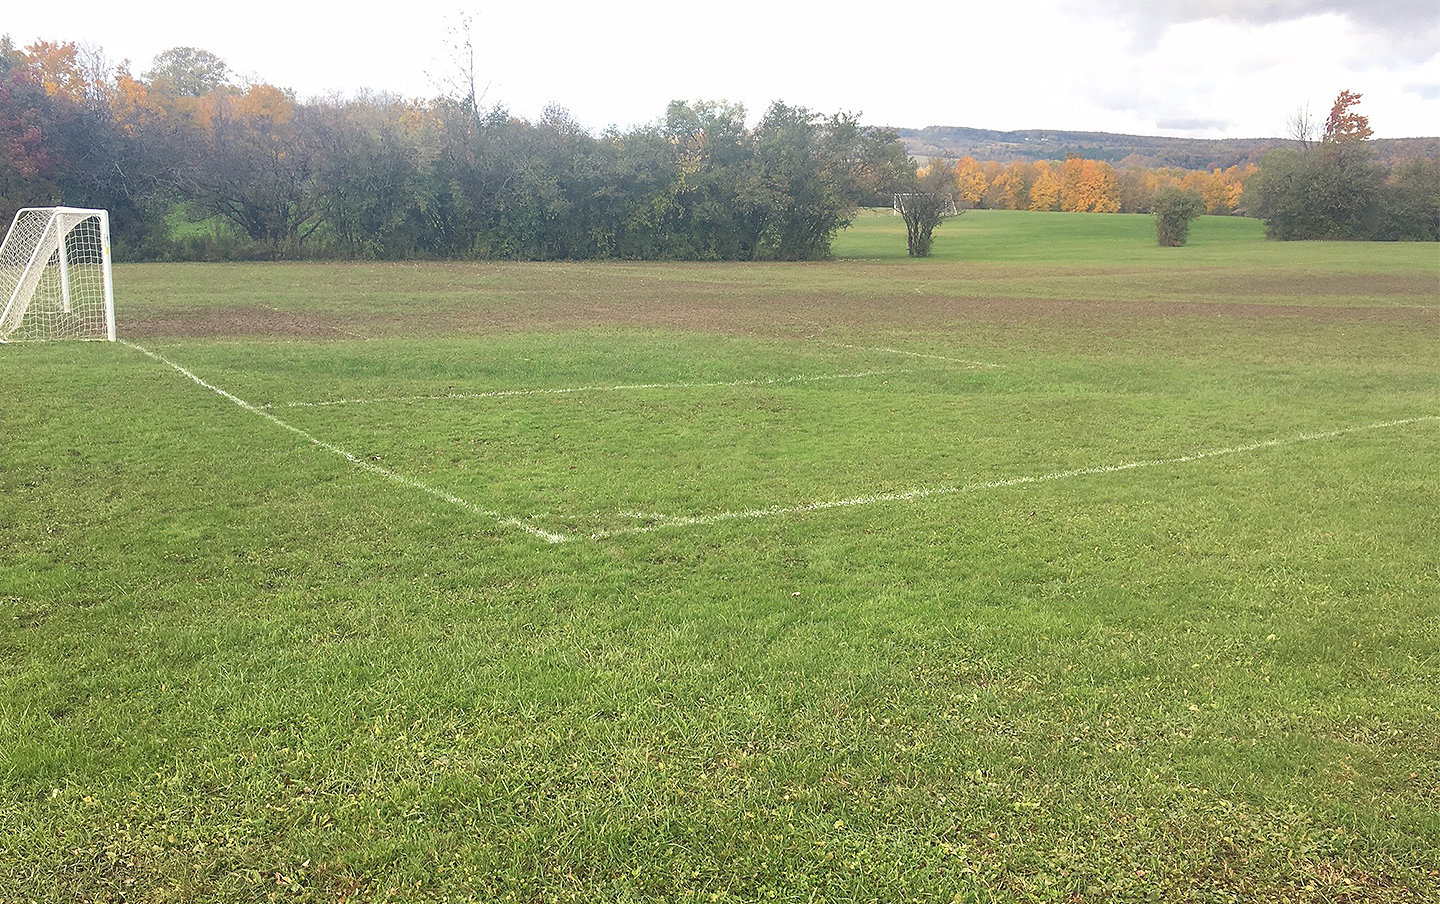 PLAY SUSPENDED — The Kirkland Town Board has decided to suspend play for AYSO at the John G. Karin III Town Park. The sod root system was ruined at the end of last season and needs repair from the Kirkland Parks and Recreation Department.